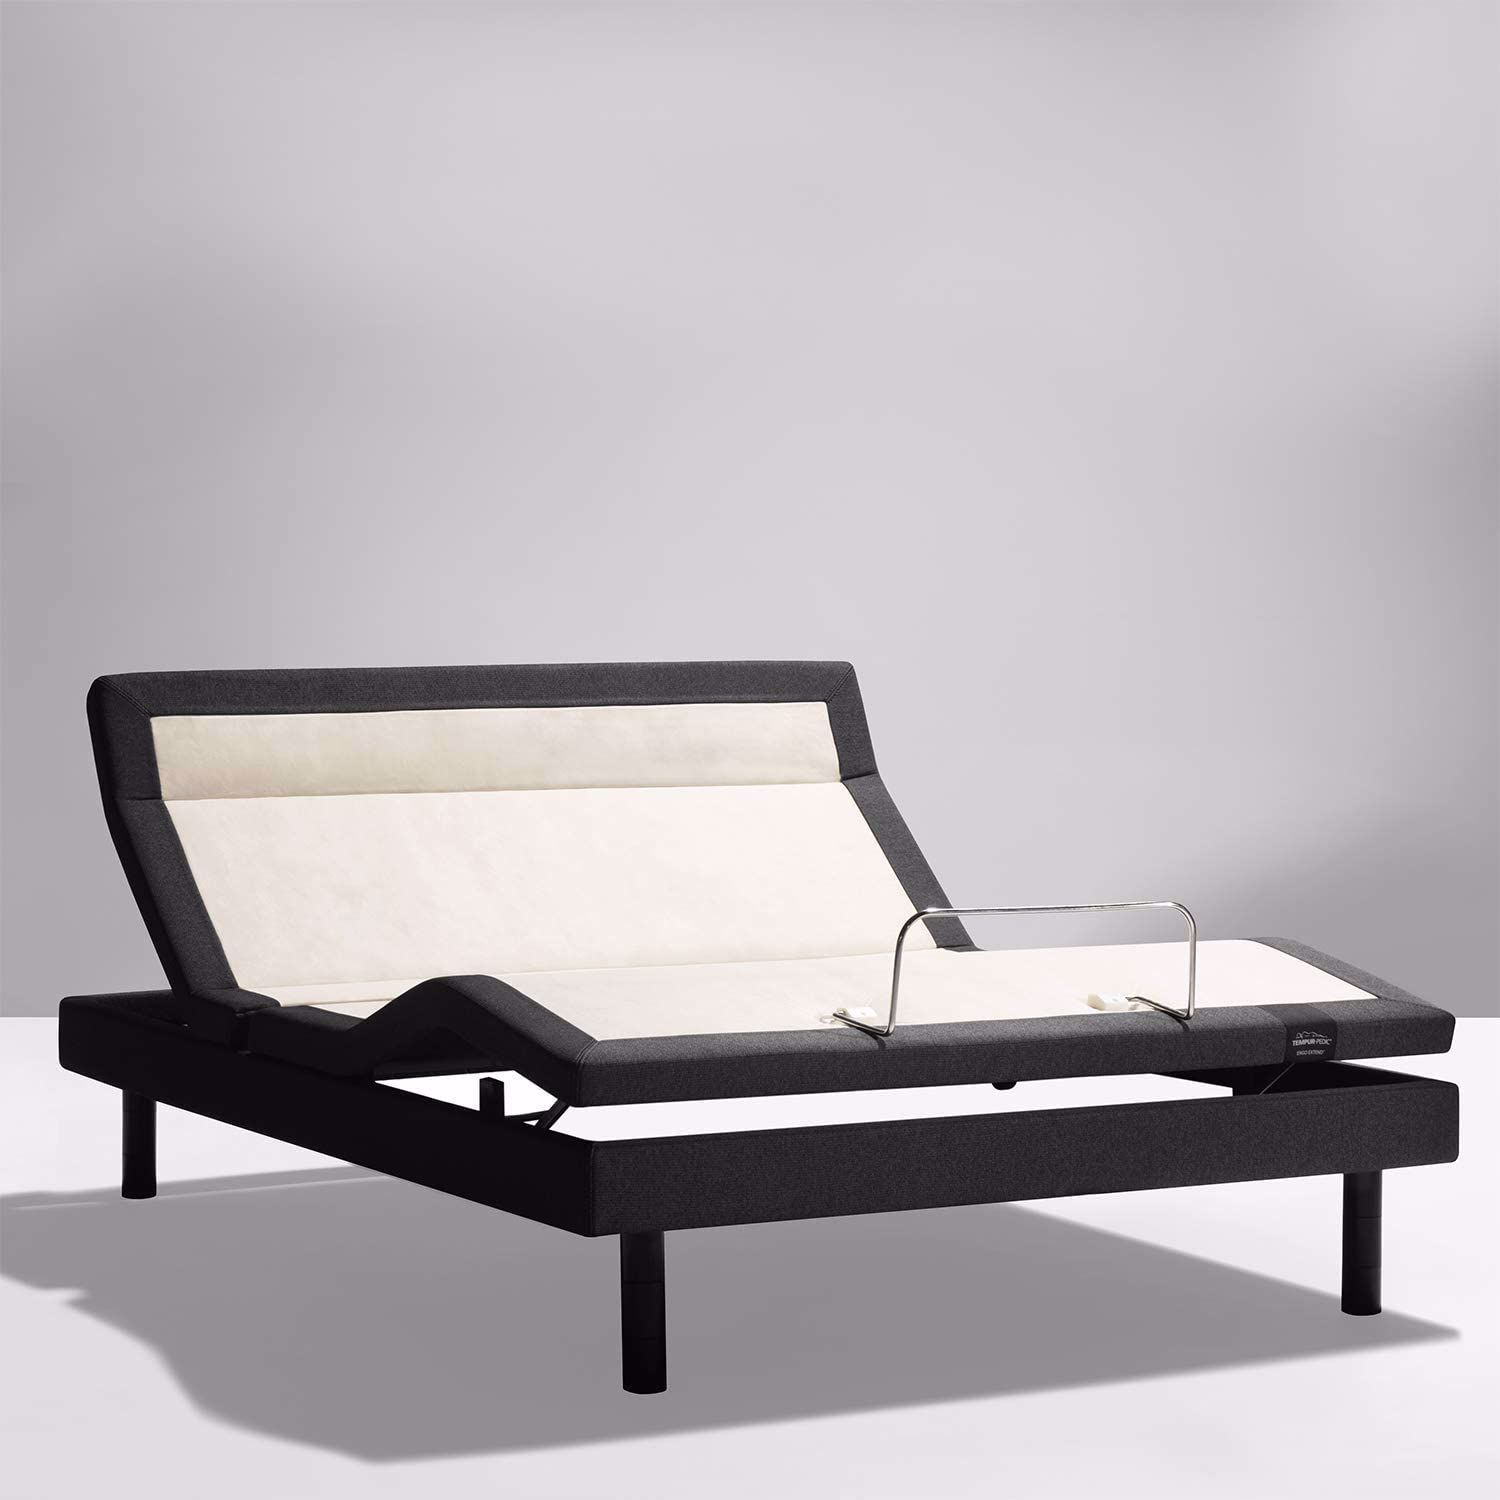 Picture of Tempur-Pedic Ergo Extend Twin XL Foundation